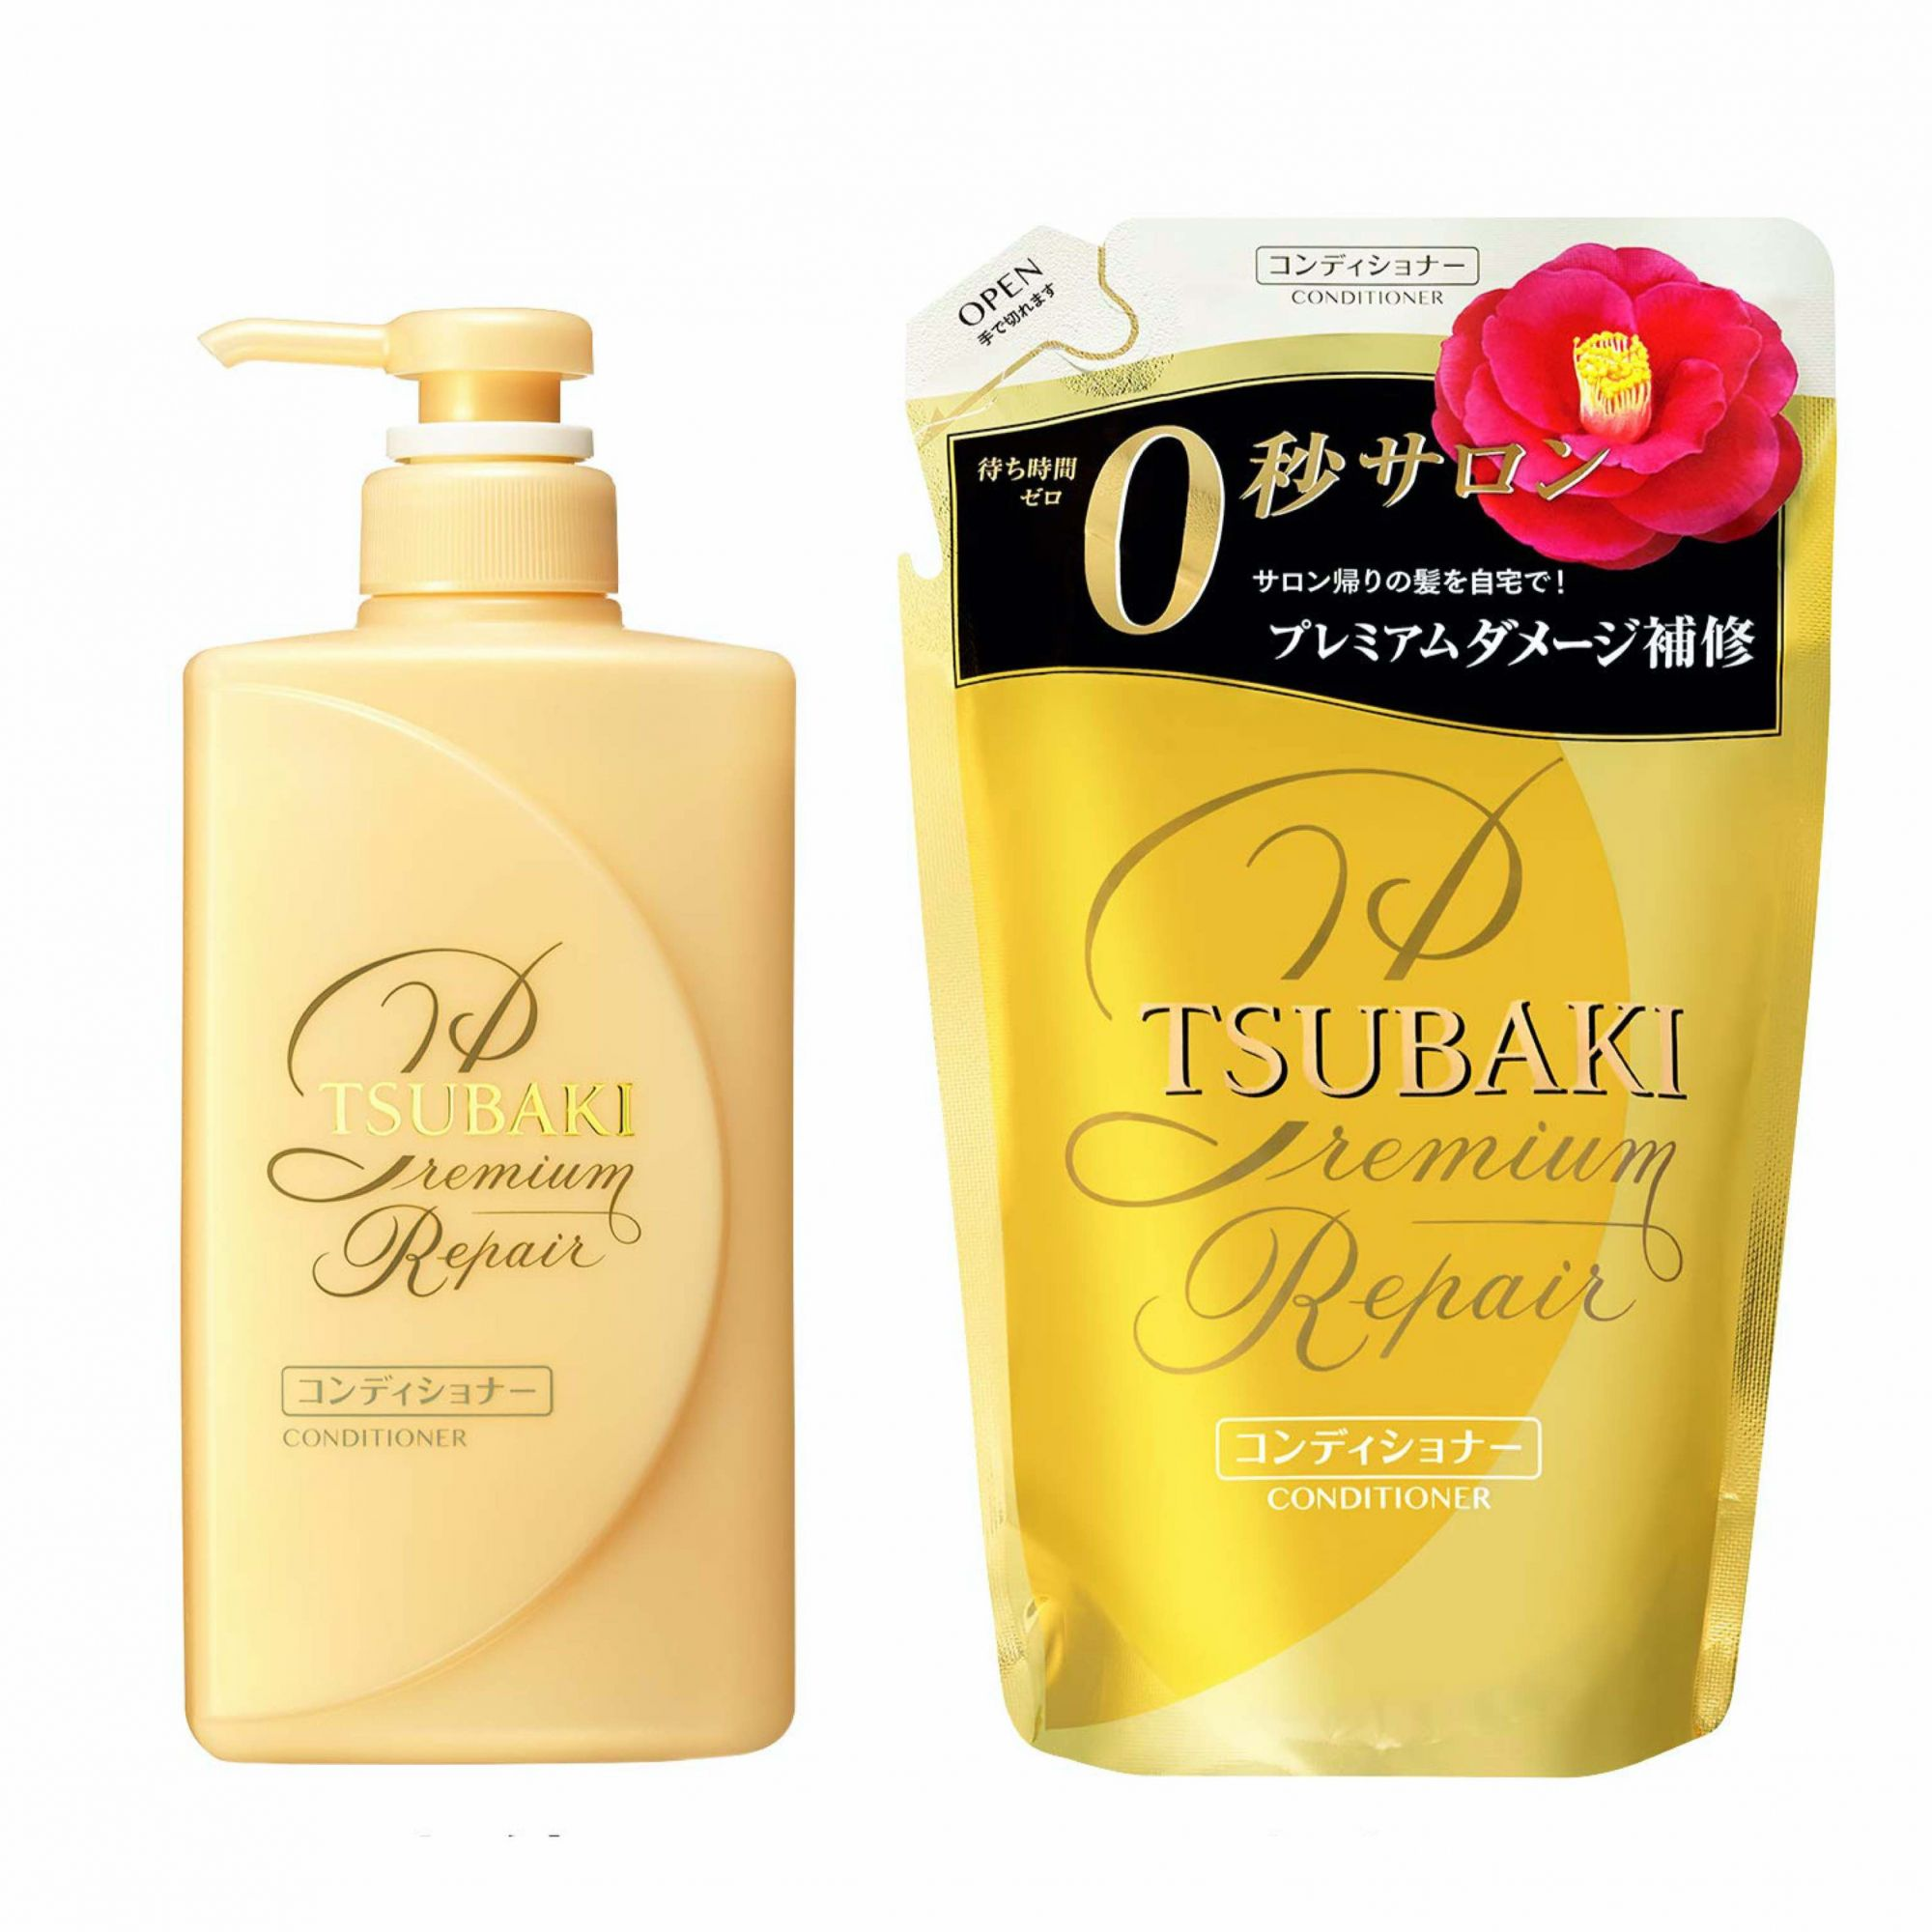 Shiseido Tsubaki Premium Repair Conditioner